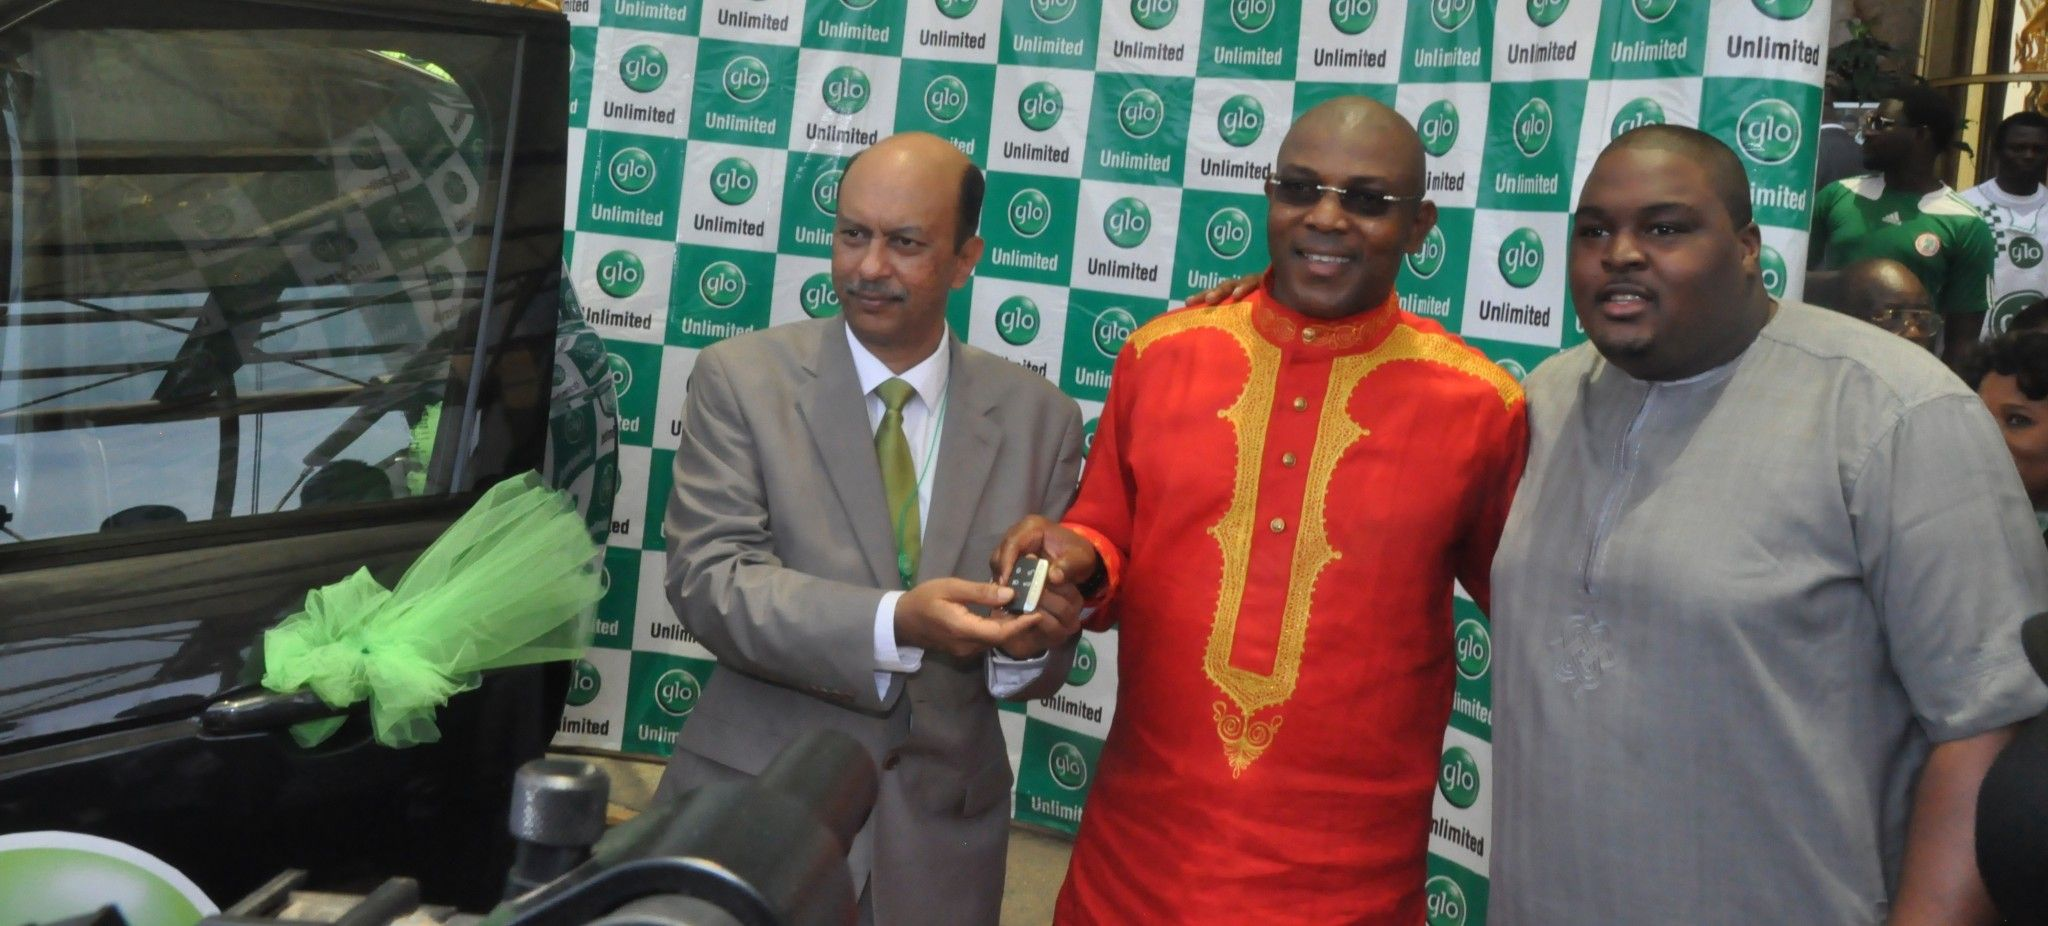 Will football be Glo's secret trump card for Telecoms Number 2?